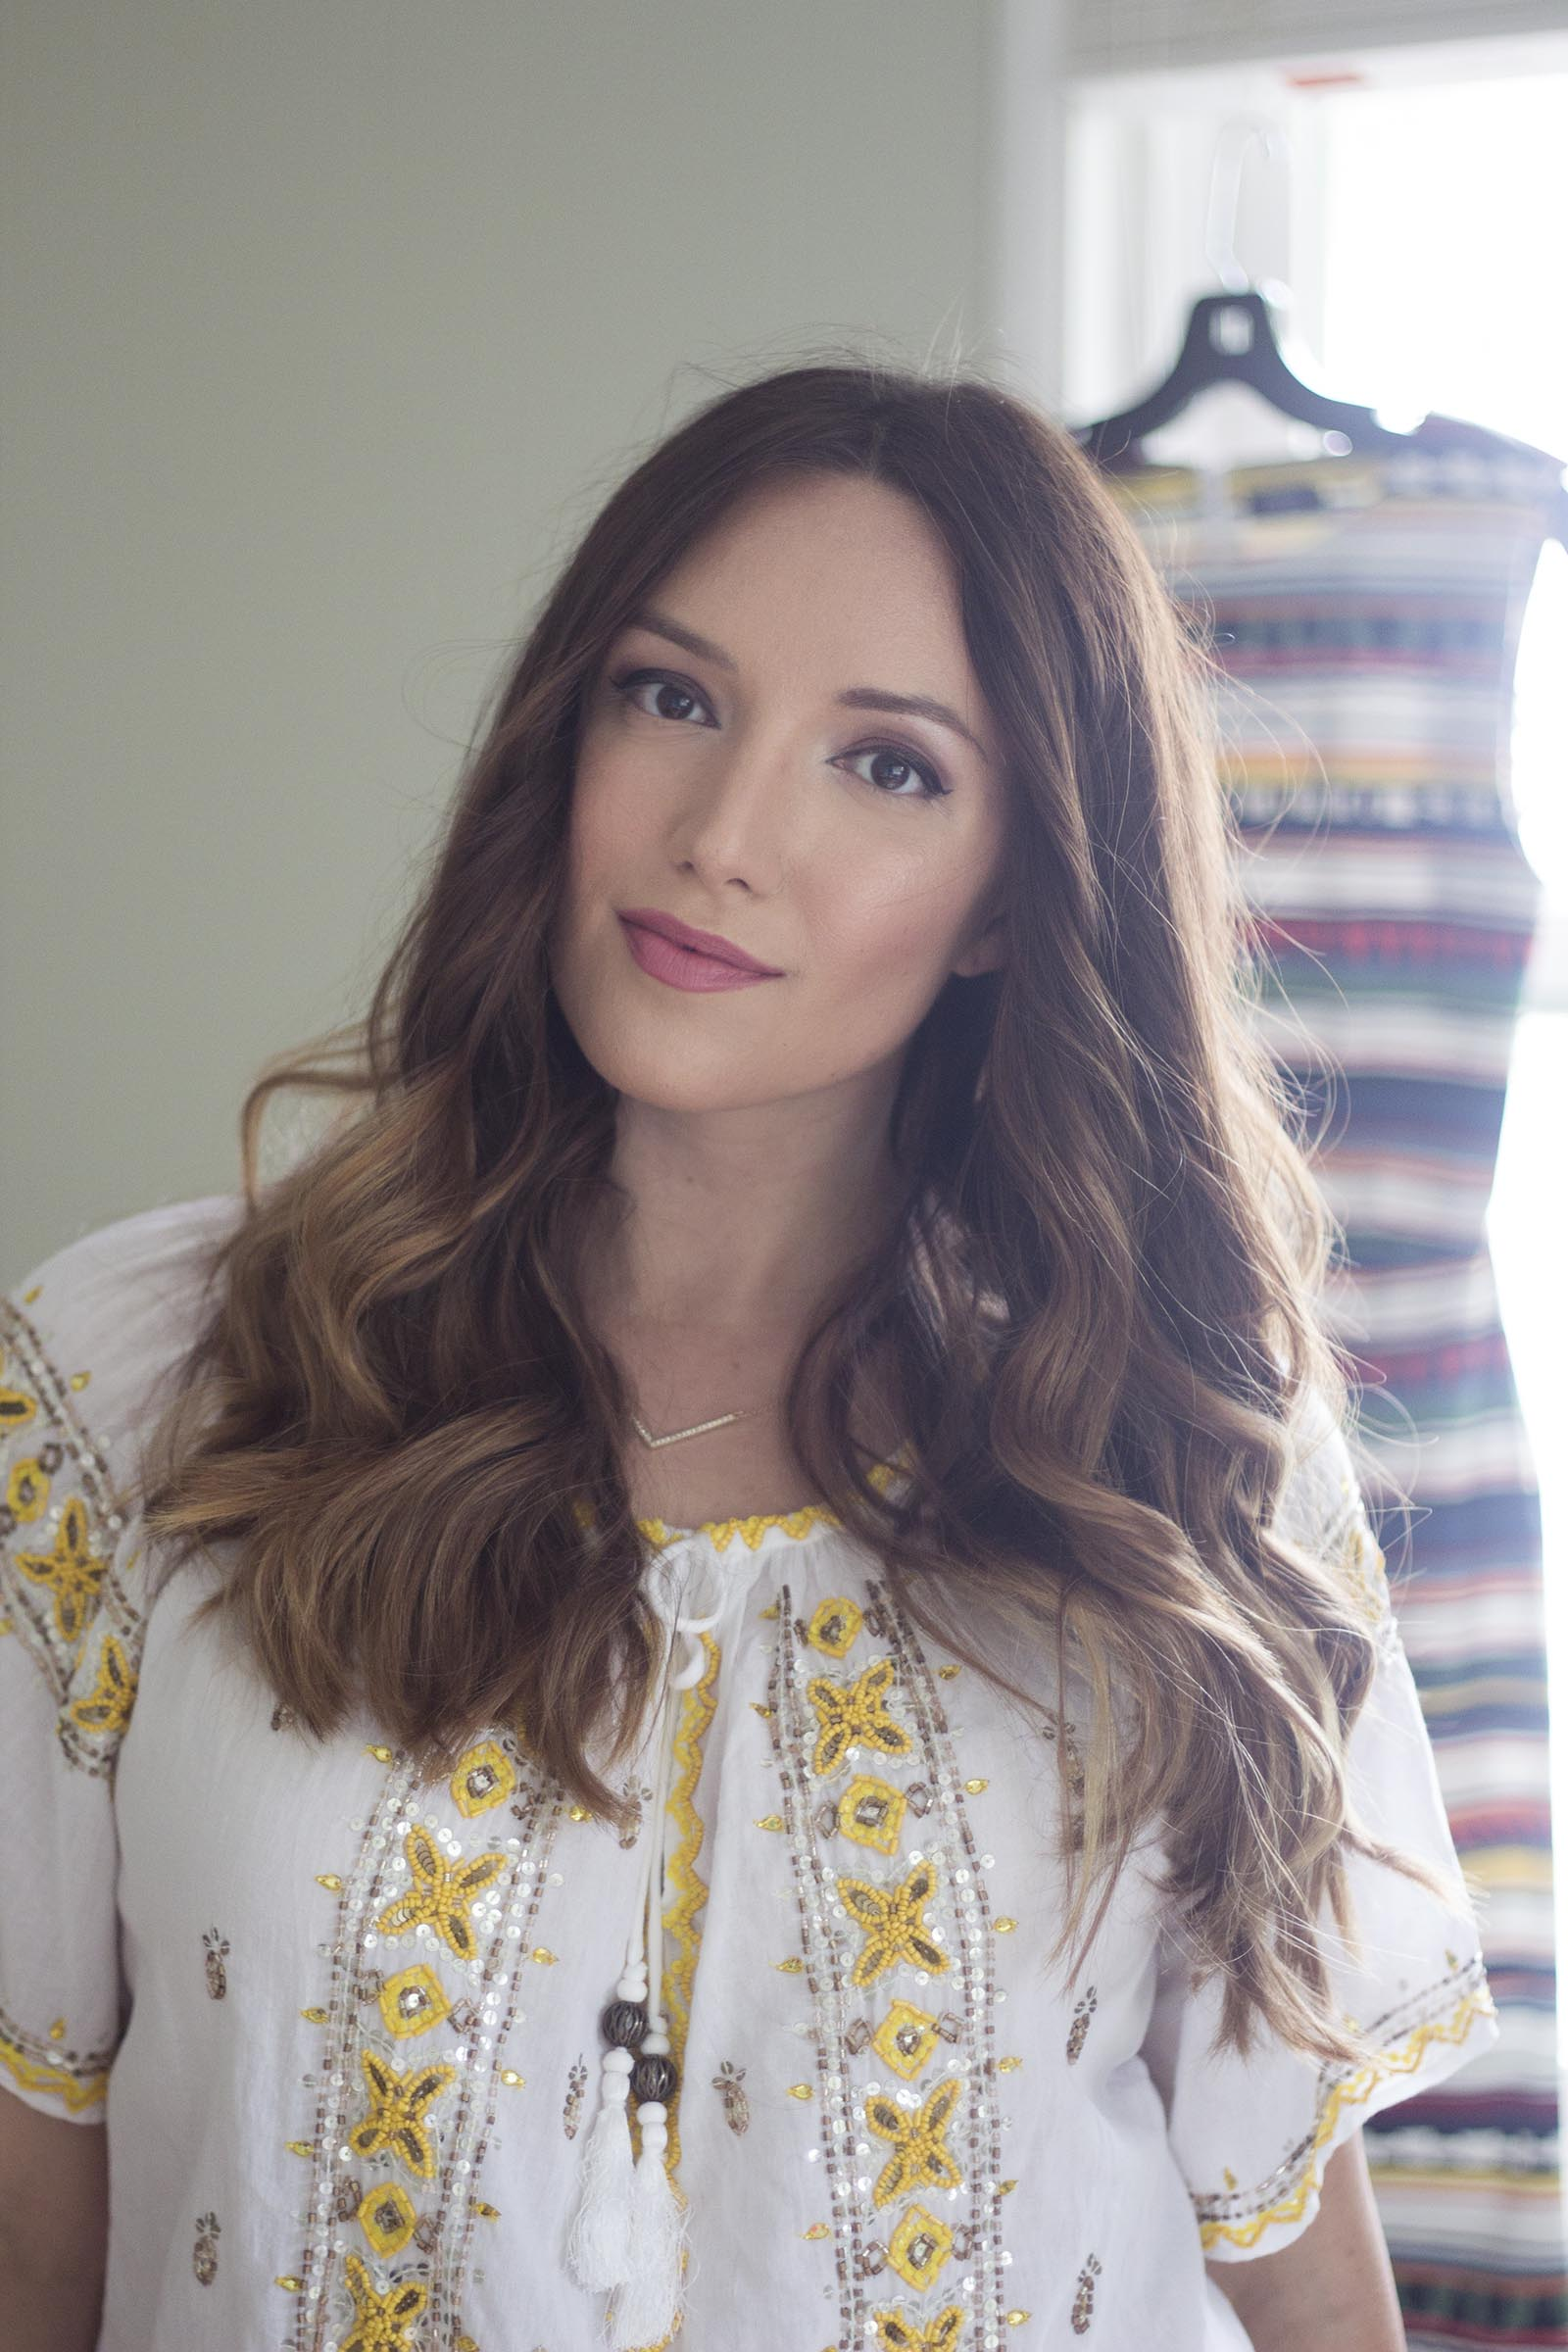 70s waves hair tutorial featured by top San Francisco beauty blog, Just Add Glam